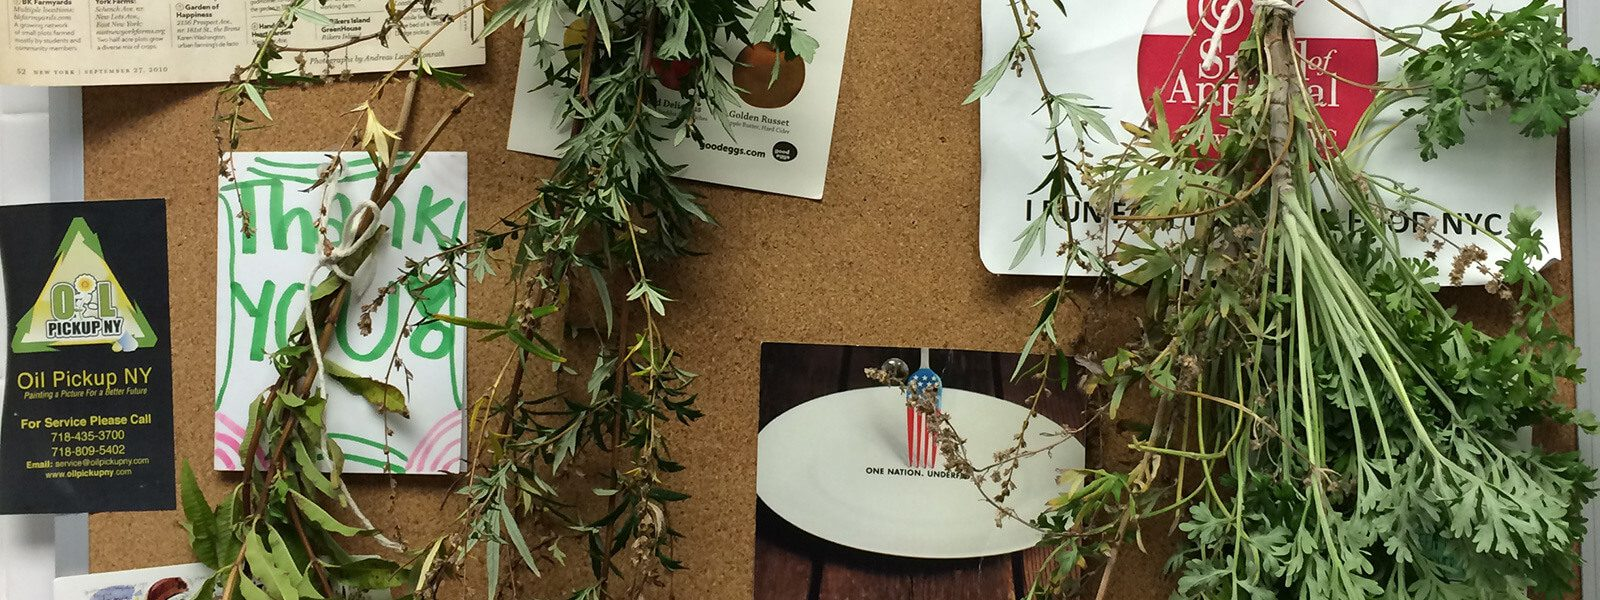 Herbs drying on the office cork board.